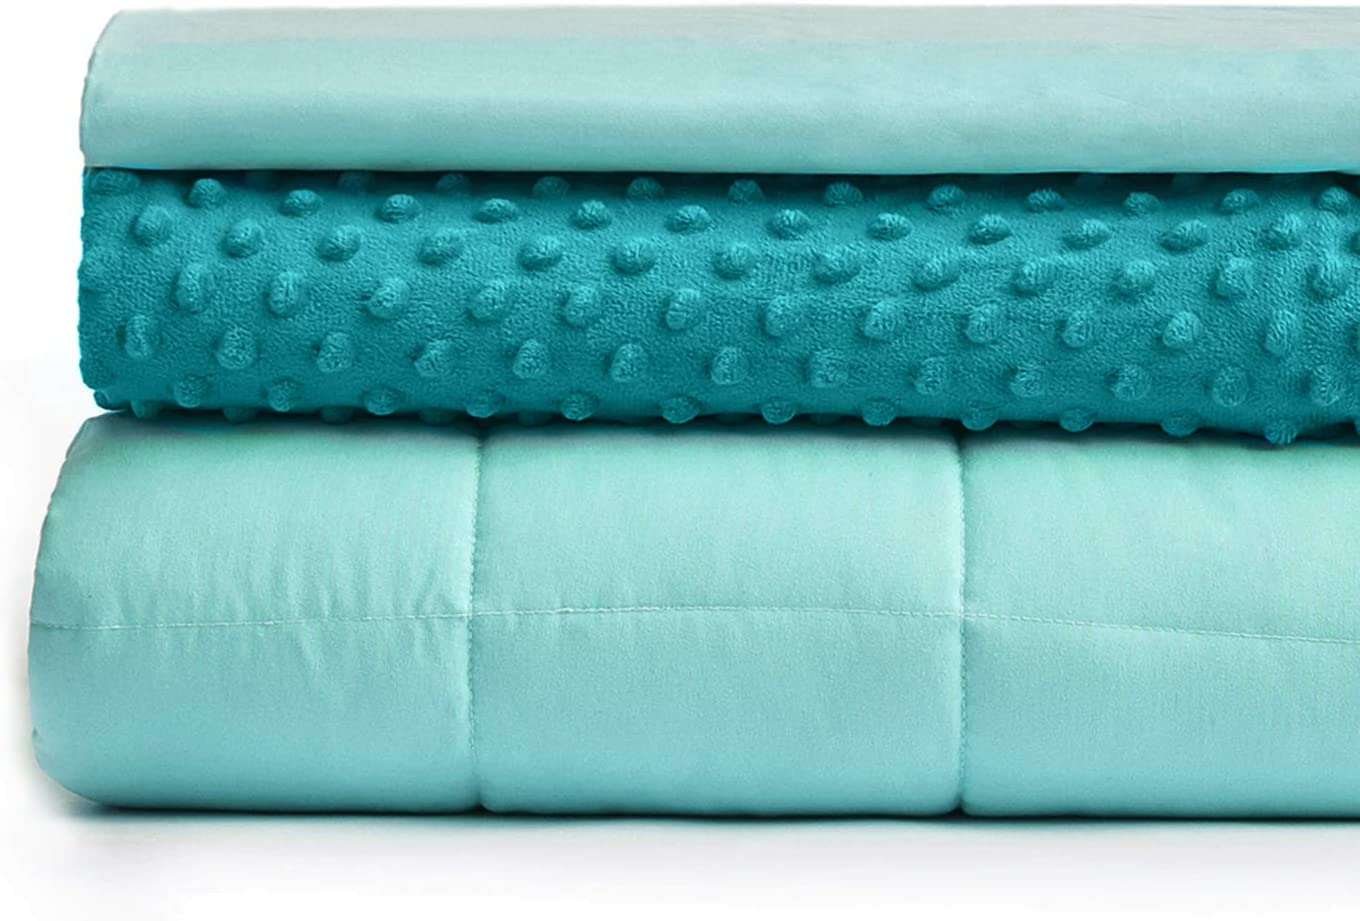 YnM Weighted Blanket and Duvet Covers — Hot and Cold Duvet Cover Set (3 Pieces) — (Green, 60''x80'' 20lbs), Suit for One Person(~190lb) Use on Queen/King Bed